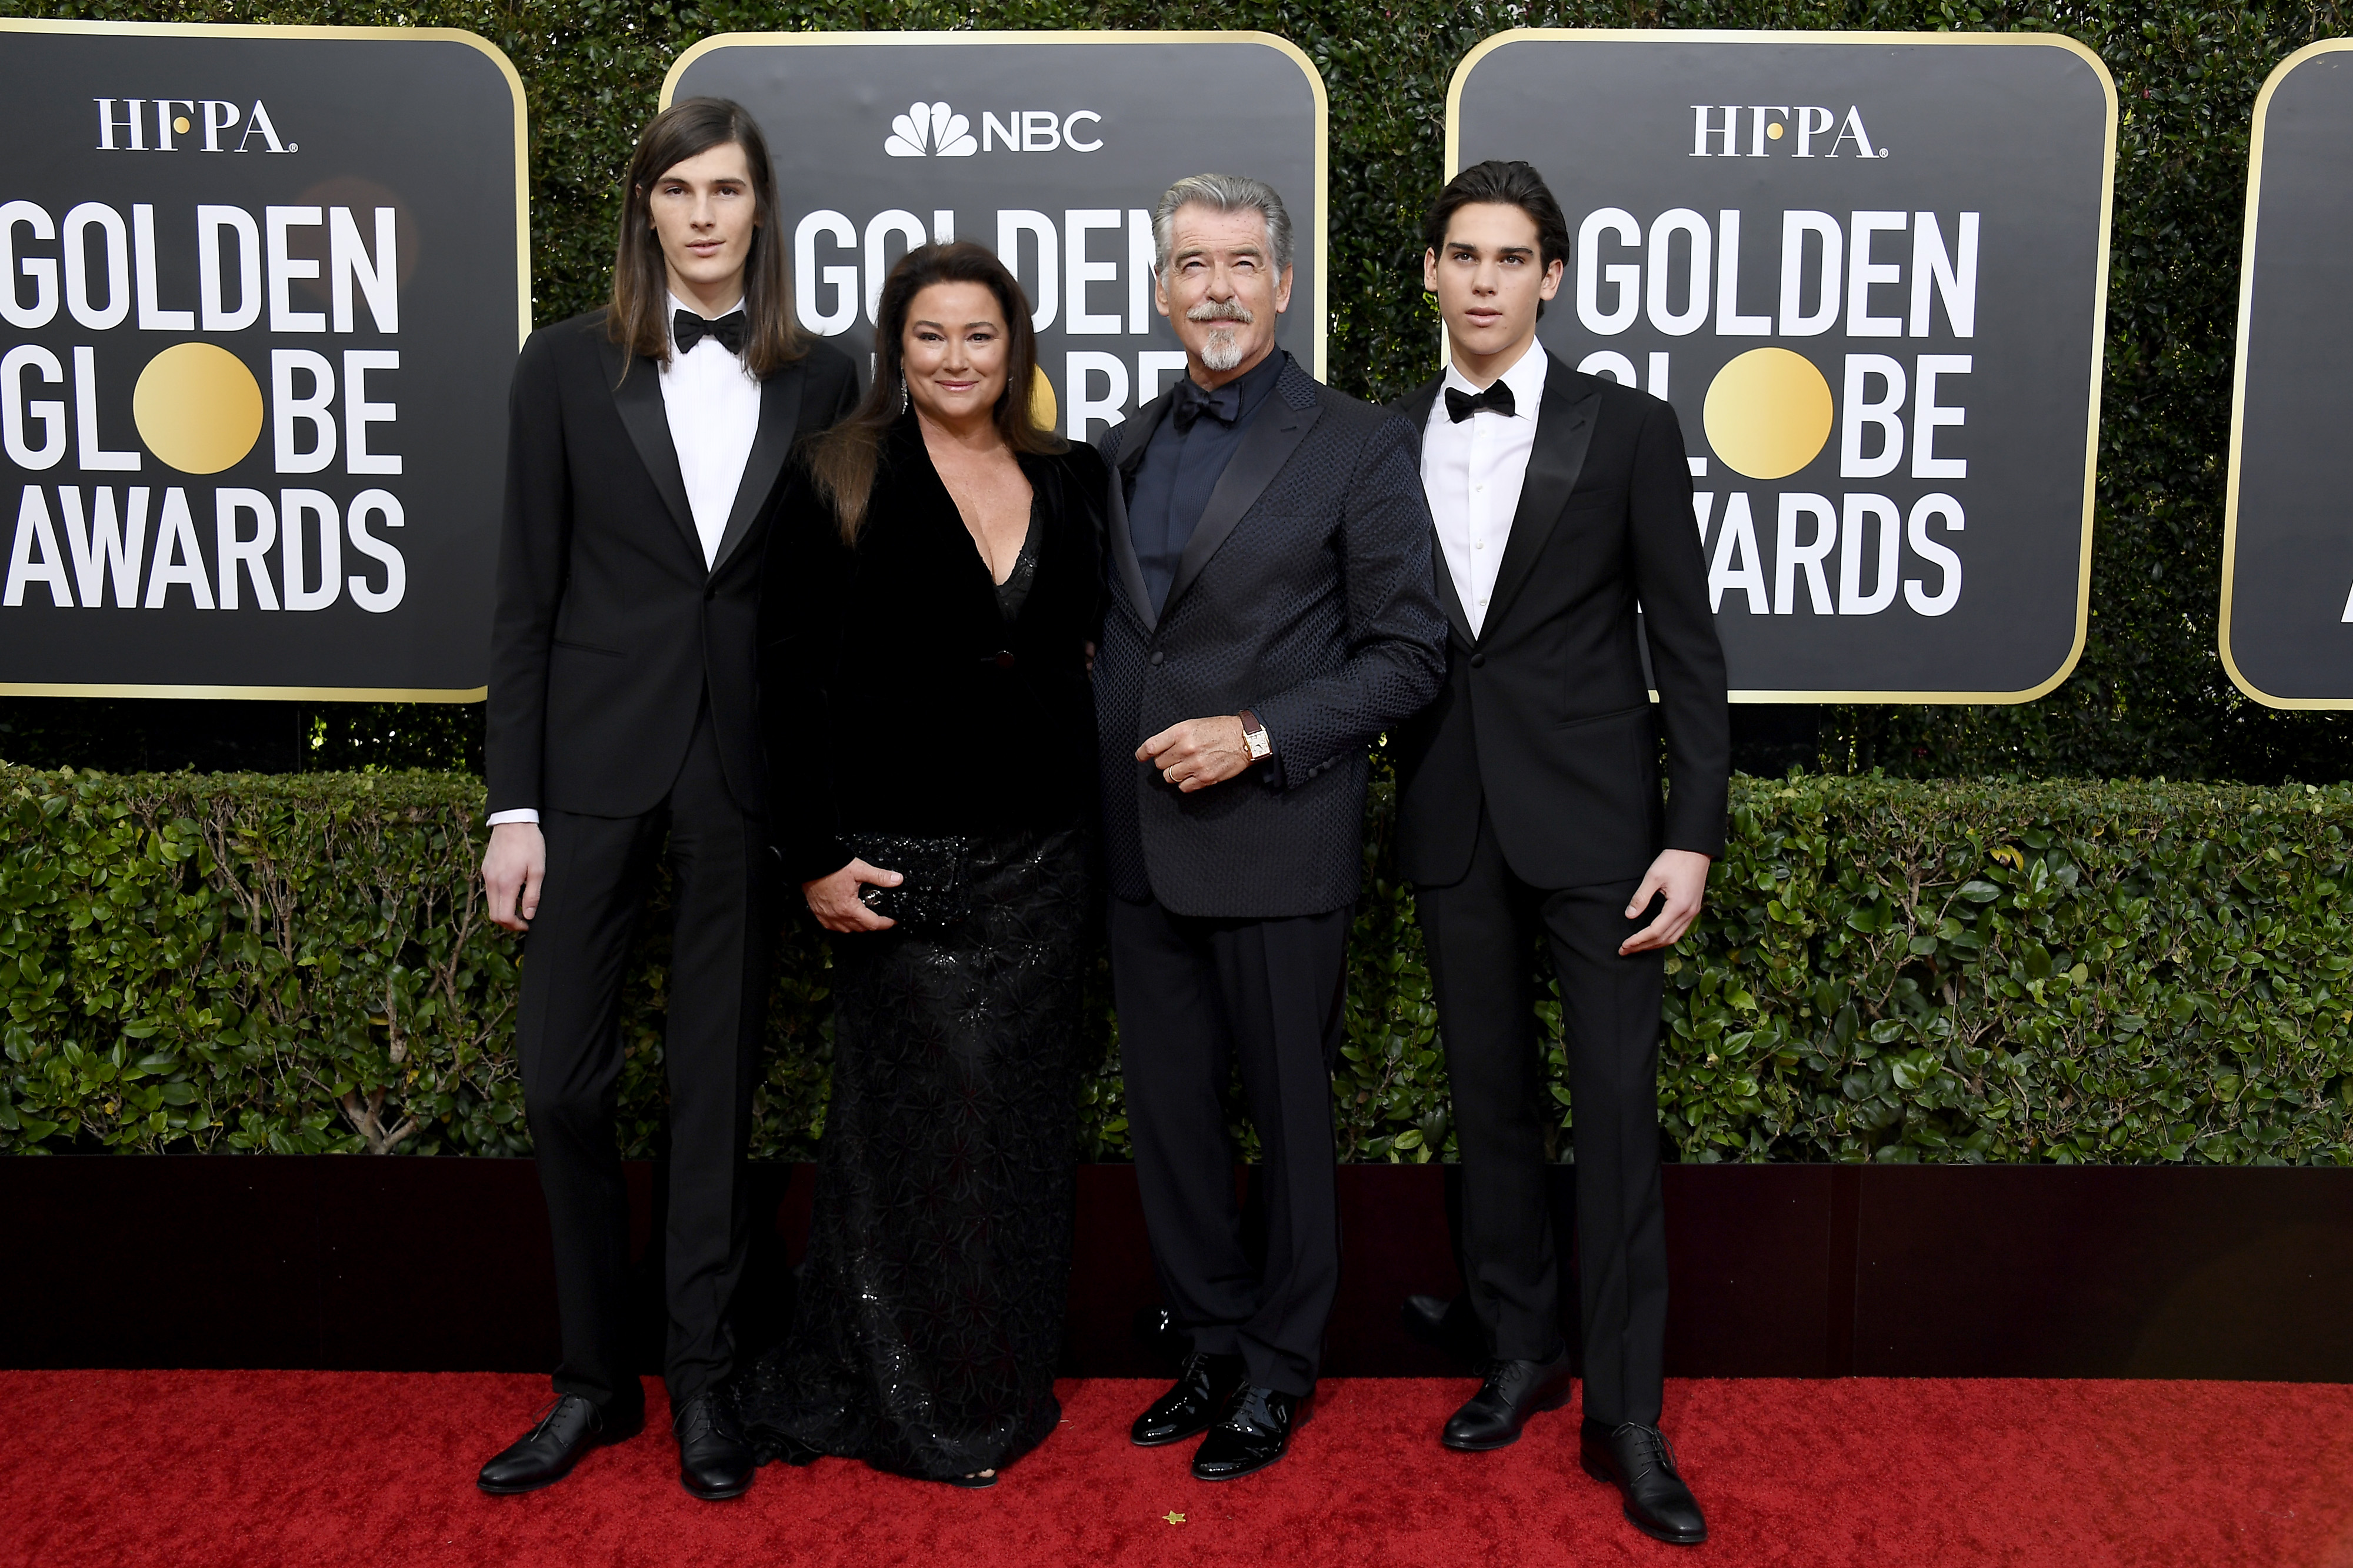 BEVERLY HILLS, CALIFORNIA - JANUARY 05: 77th ANNUAL GOLDEN GLOBE AWARDS -- Pictured: (l-r) Dylan Brosnan, Keely Shaye Smith, Pierce Brosnan, and Paris Brosnan arrive to the 77th Annual Golden Globe Awards held at the Beverly Hilton Hotel on January 5, 2020. -- (Photo by: Kevork Djansezian/NBC/NBCU Photo Bank via Getty Images)